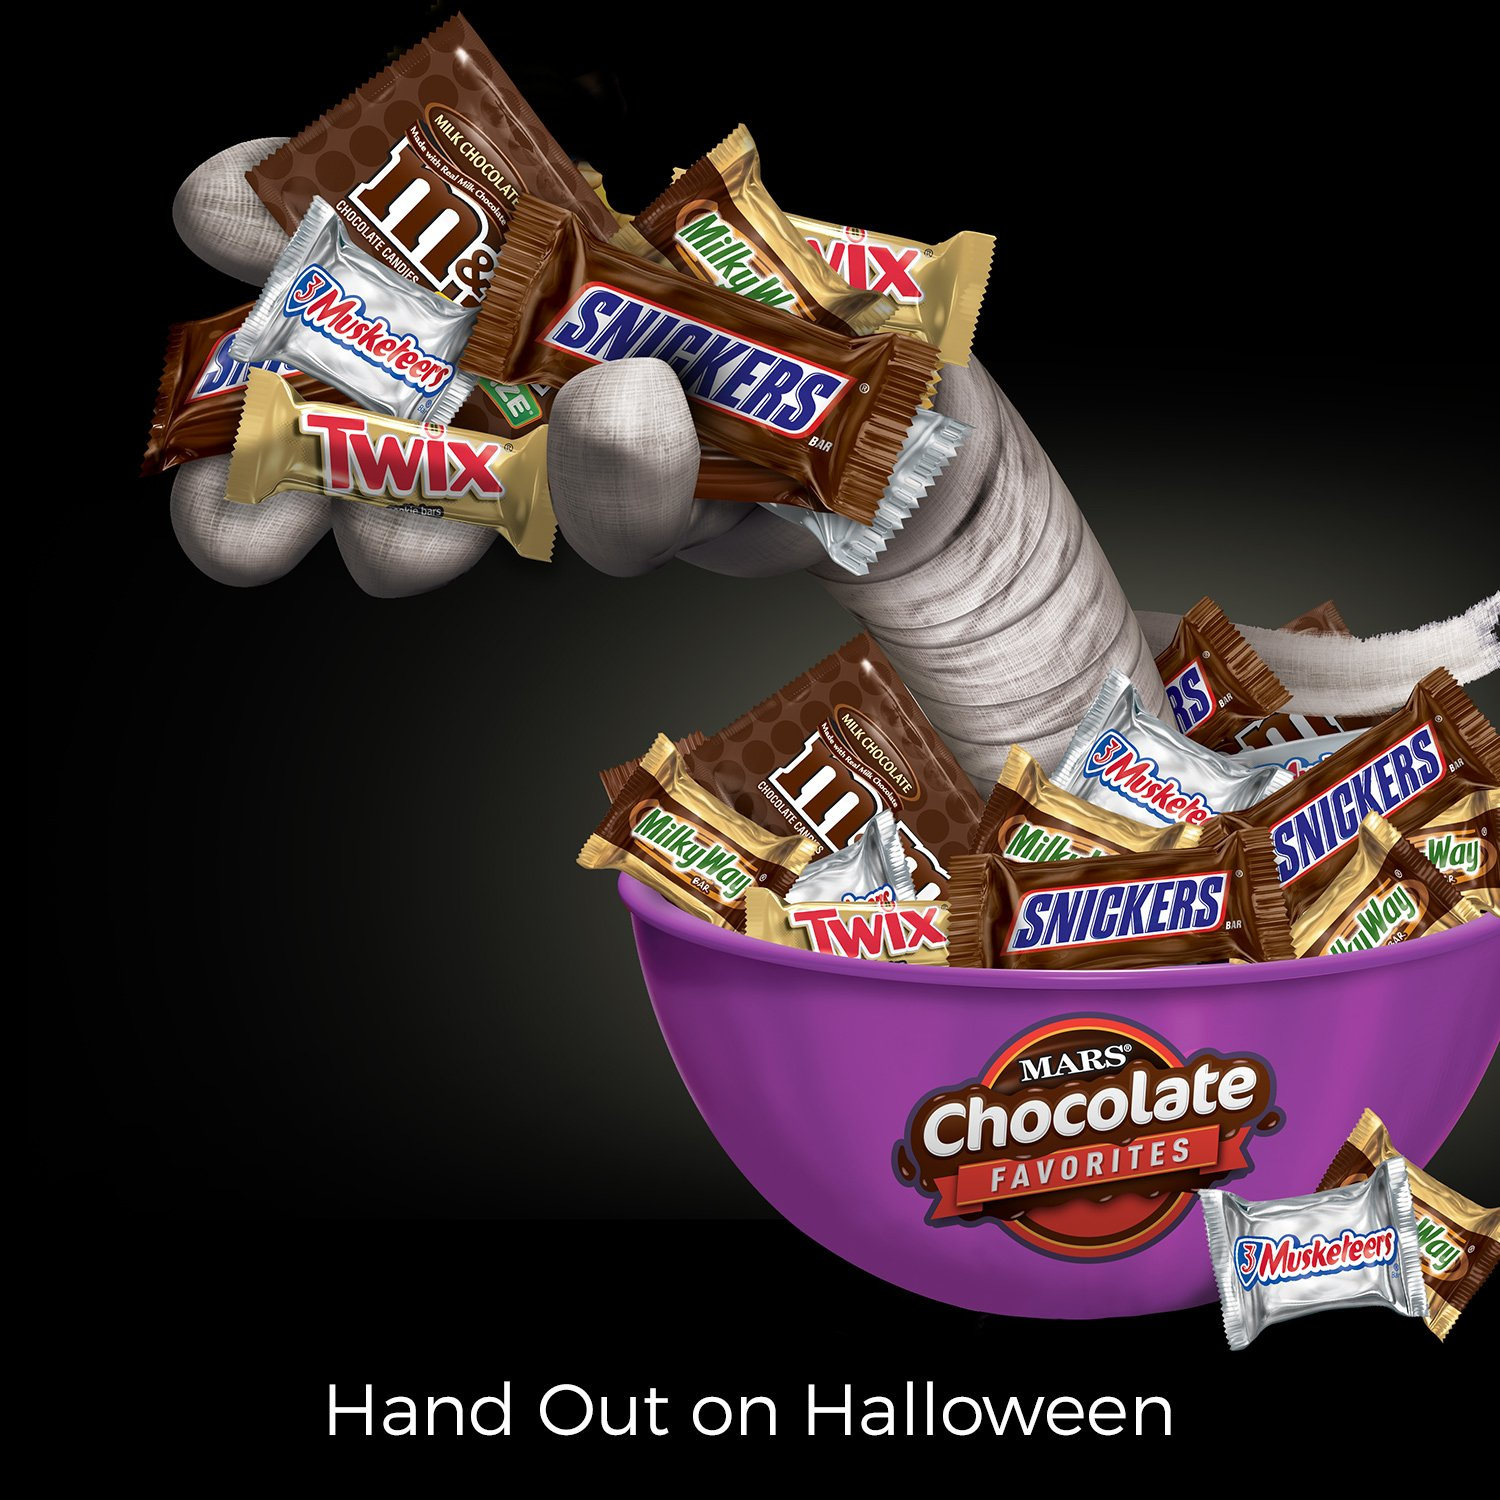 MARS Chocolate Favorites Candy Bars Variety Mix 96.2-Ounce 250-Piece Bag by Mars (Image #3)